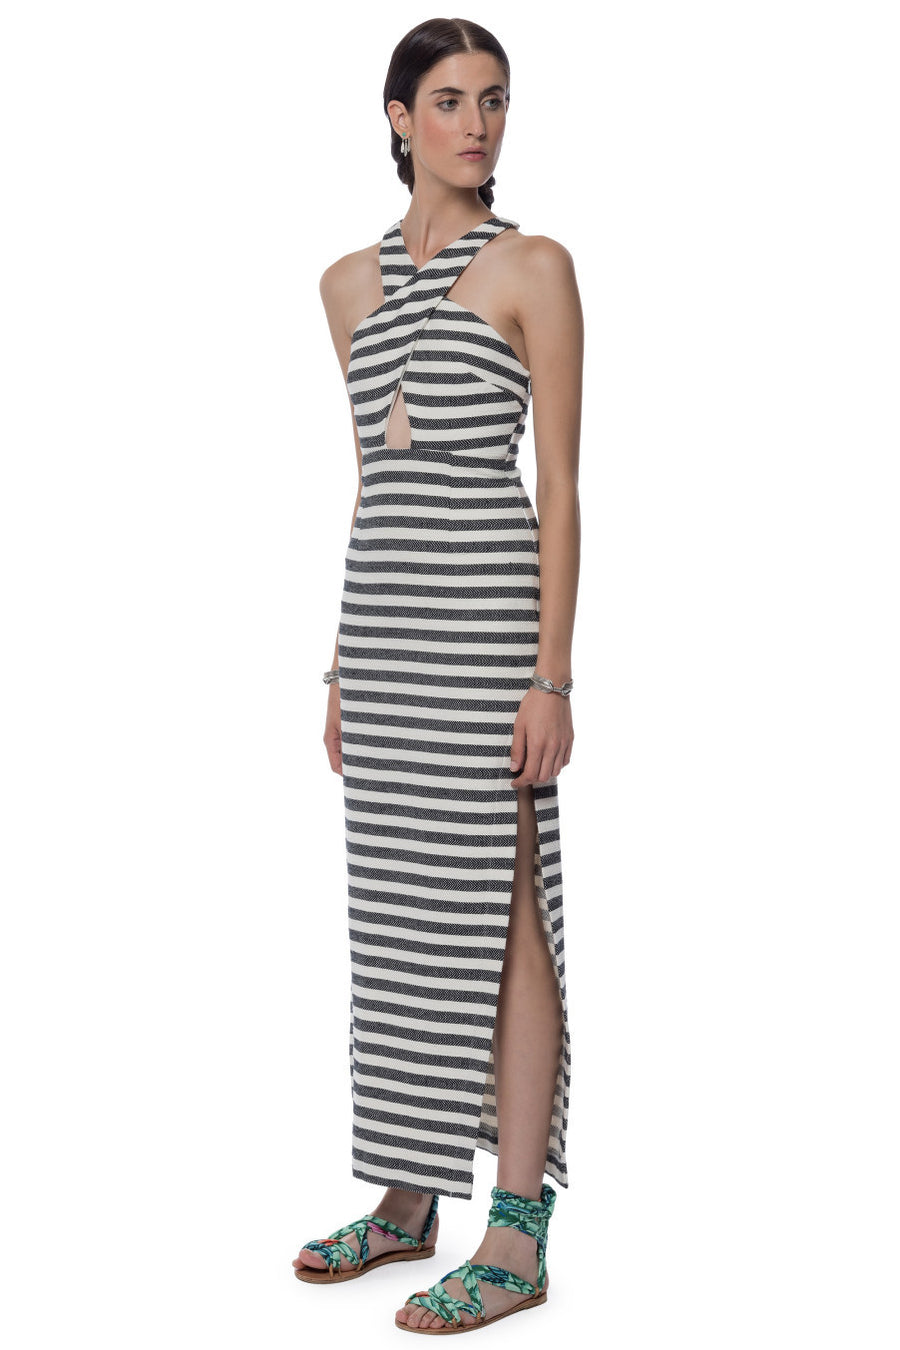 Mara Hoffman Stripe Cross Front Dress Black Cream - Call Me The Breeze